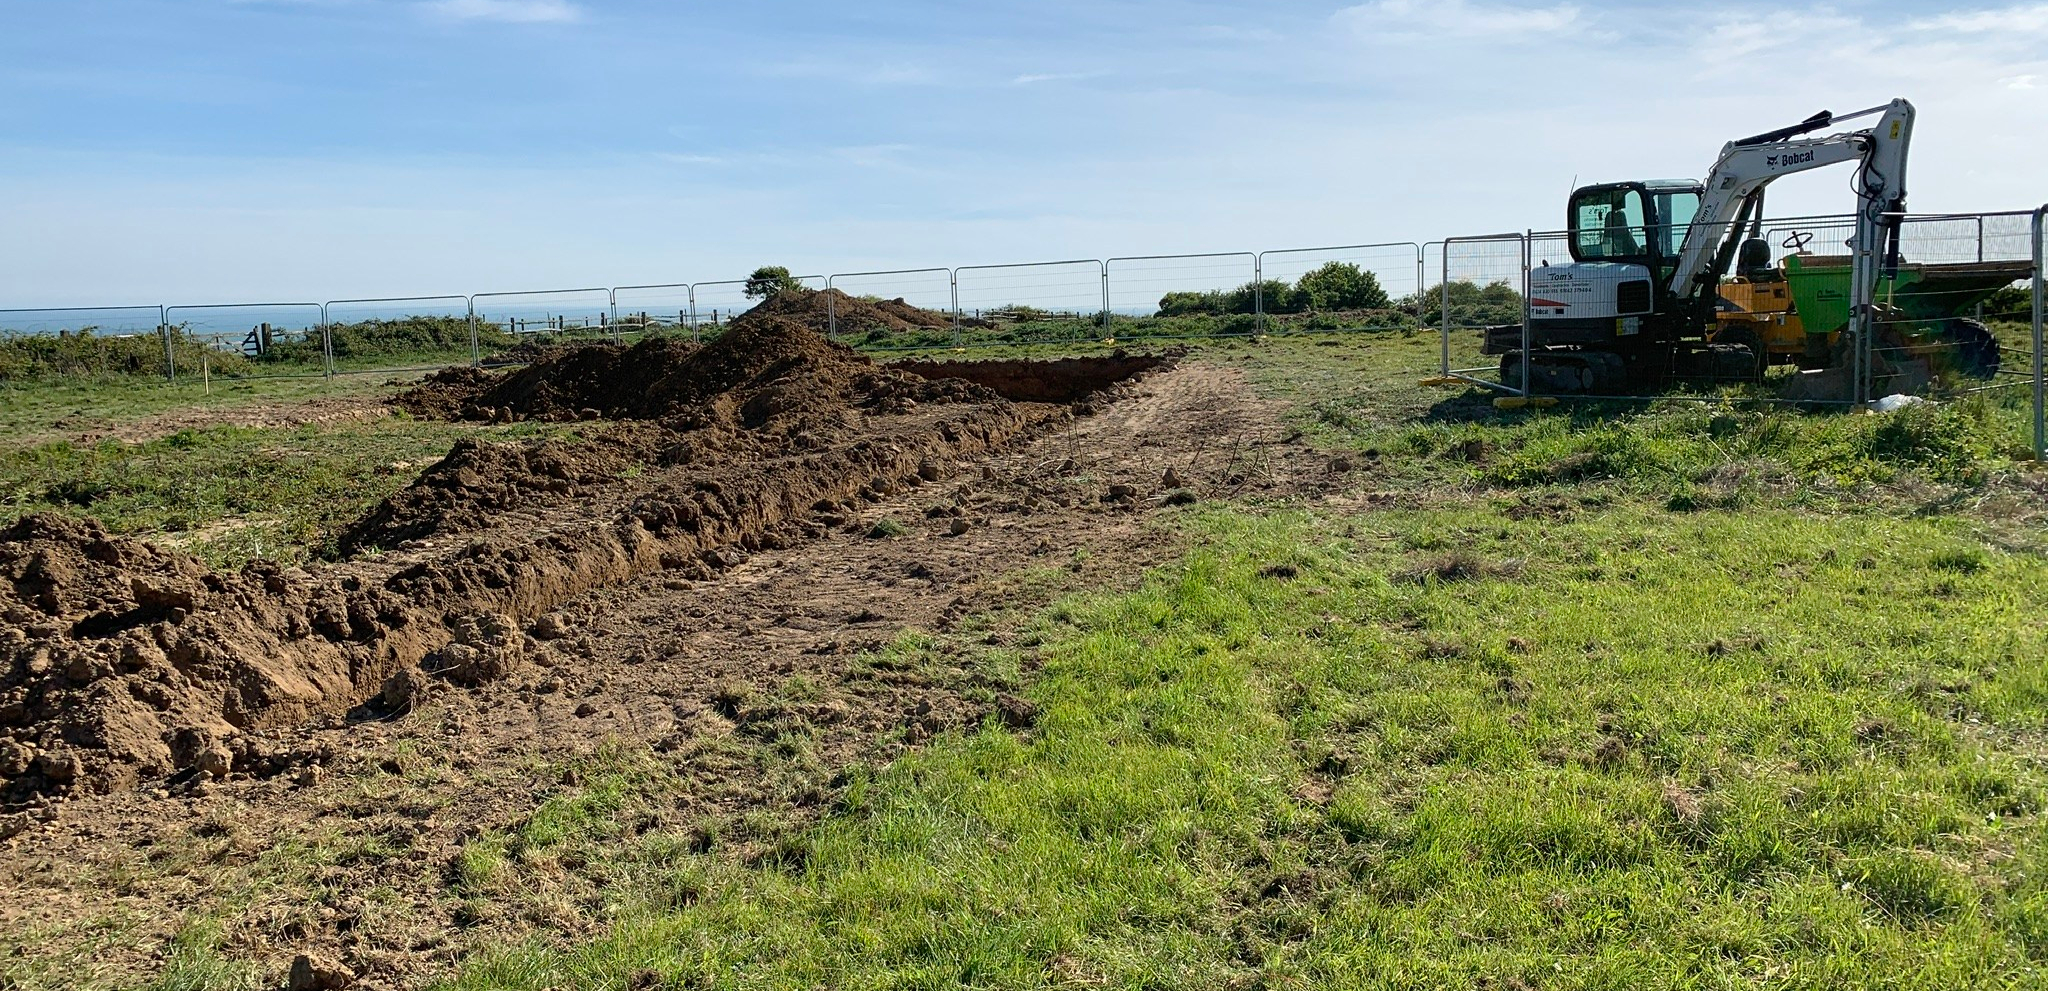 The earth's moved in Hastings Country Park